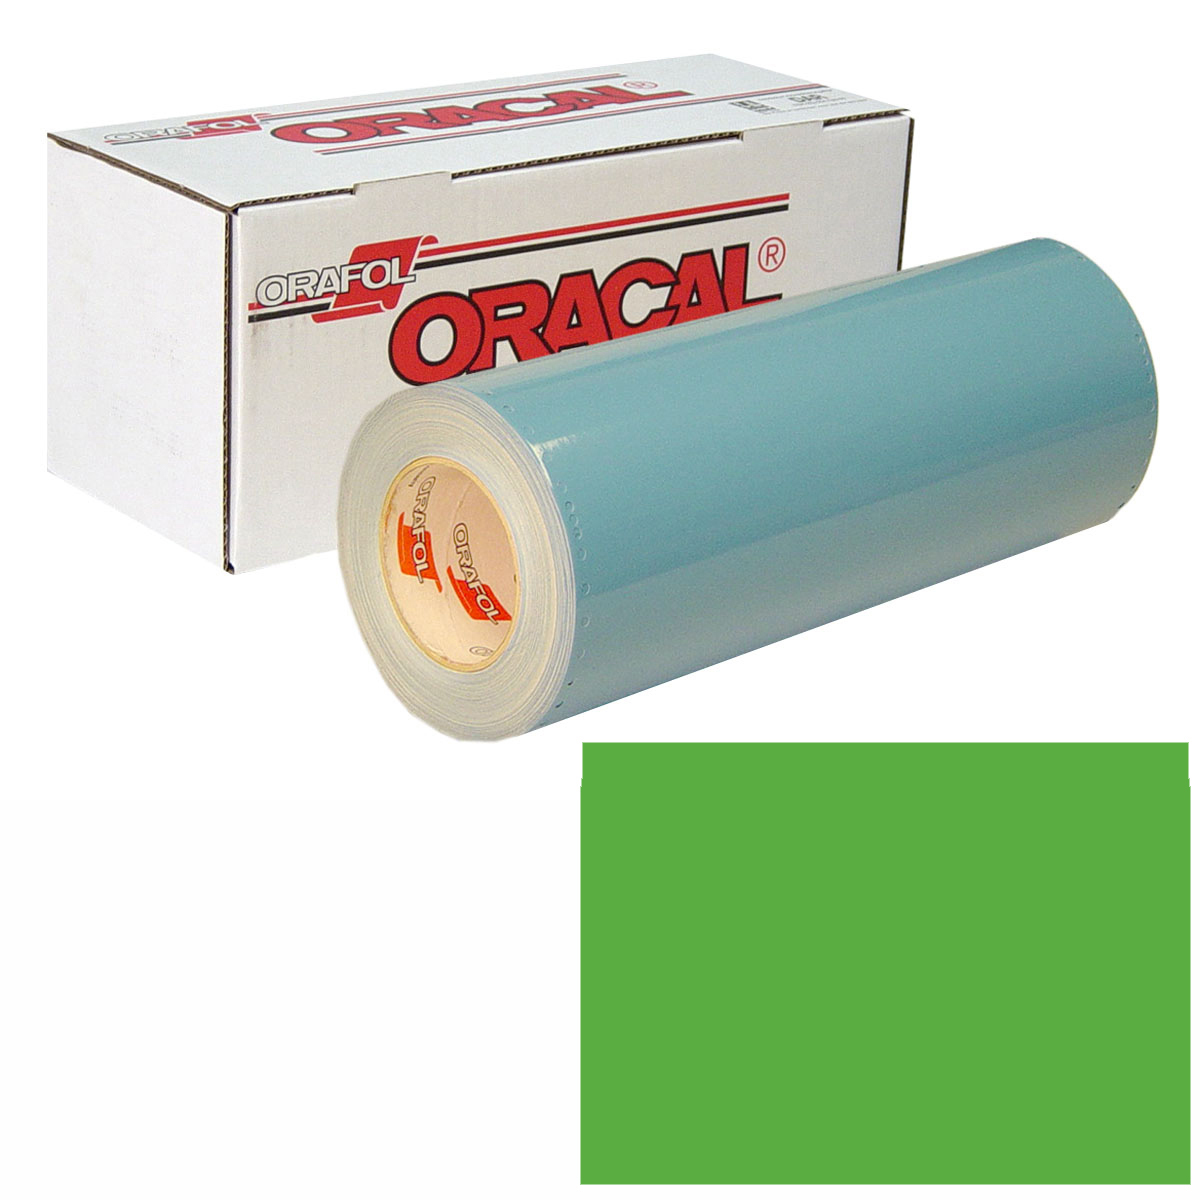 ORACAL 751 30in X 10yd 063 Lime-Tree Green